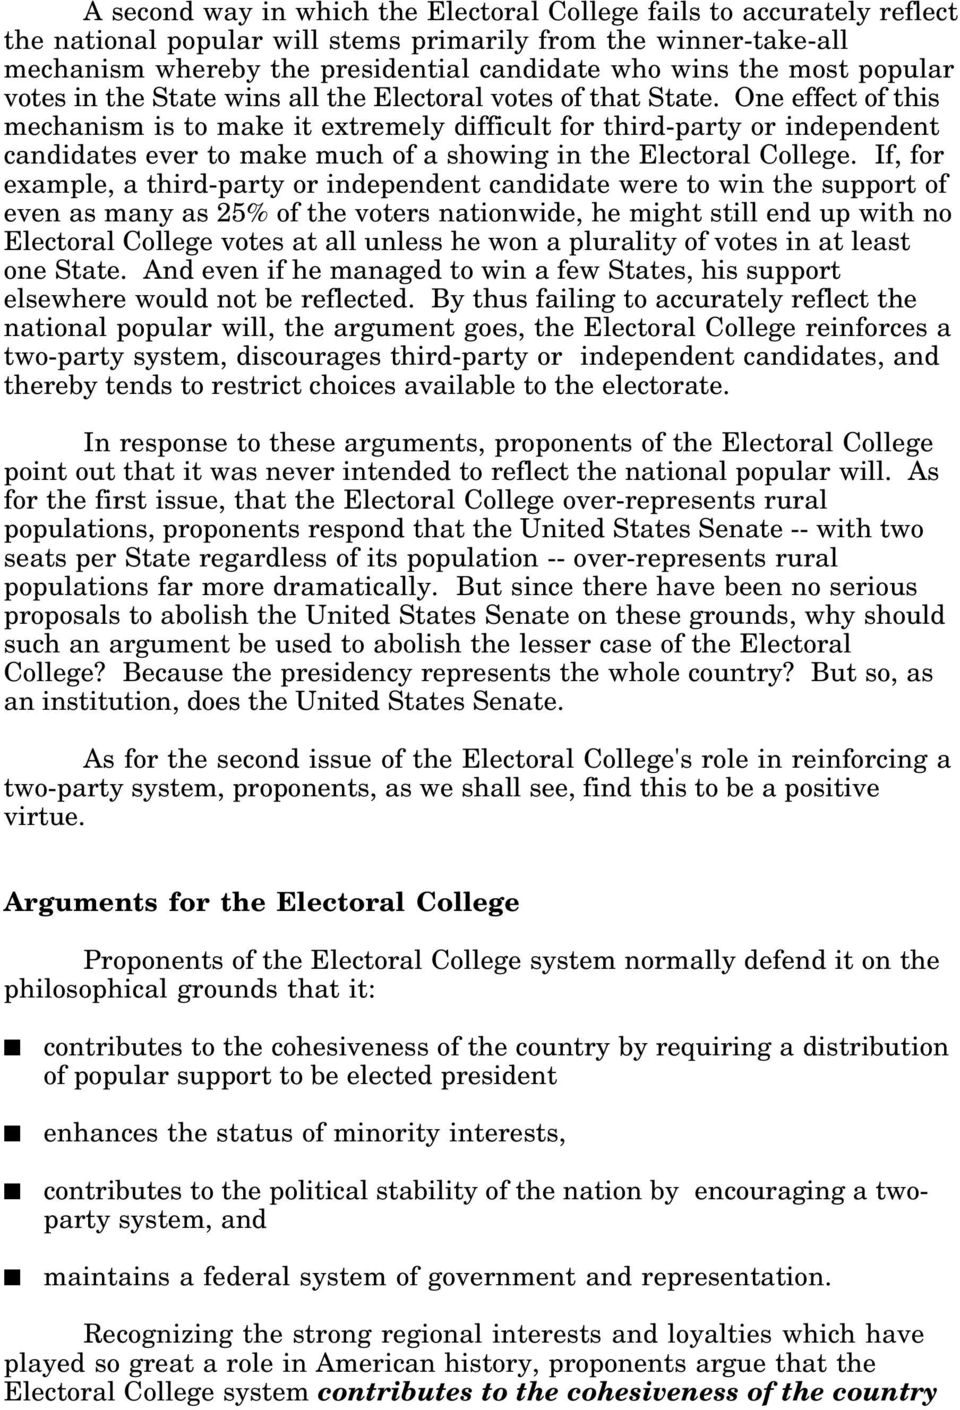 One effect of this mechanism is to make it extremely difficult for third-party or independent candidates ever to make much of a showing in the Electoral College.